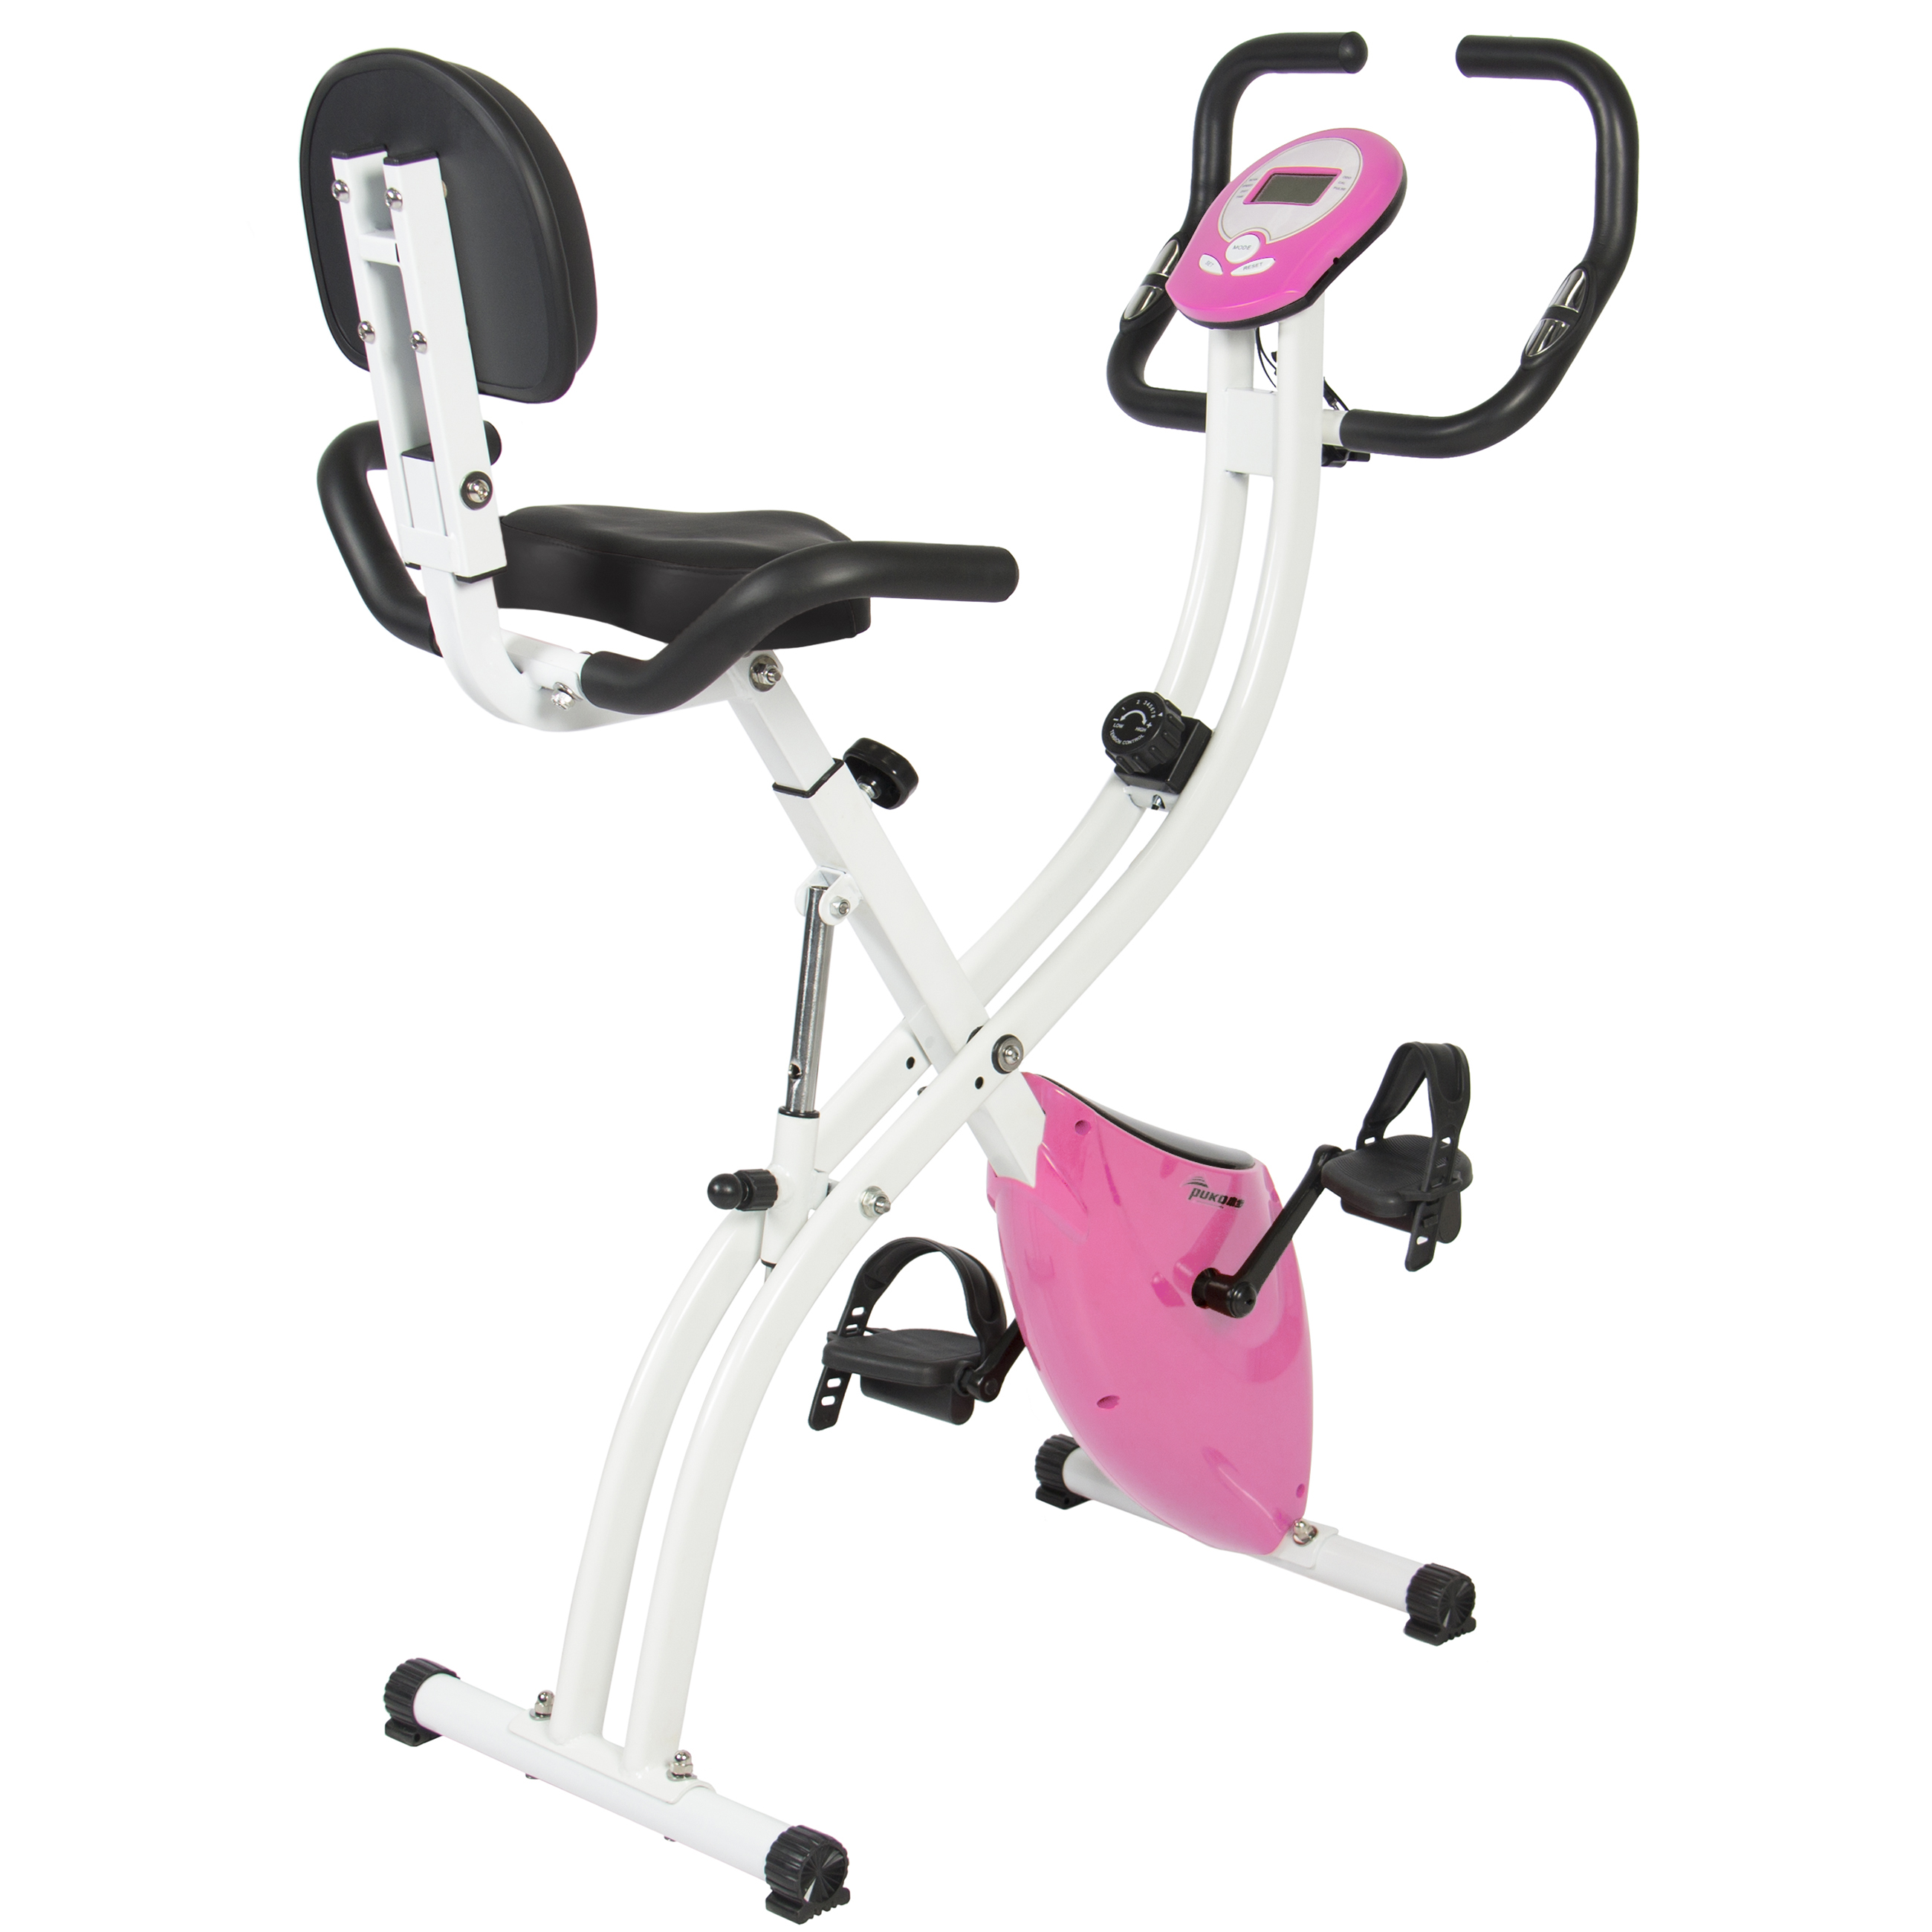 Best Choice Products Folding Adjustable Magnetic Upright Exercise Bike Fitness Upgraded Machine (Pink) by